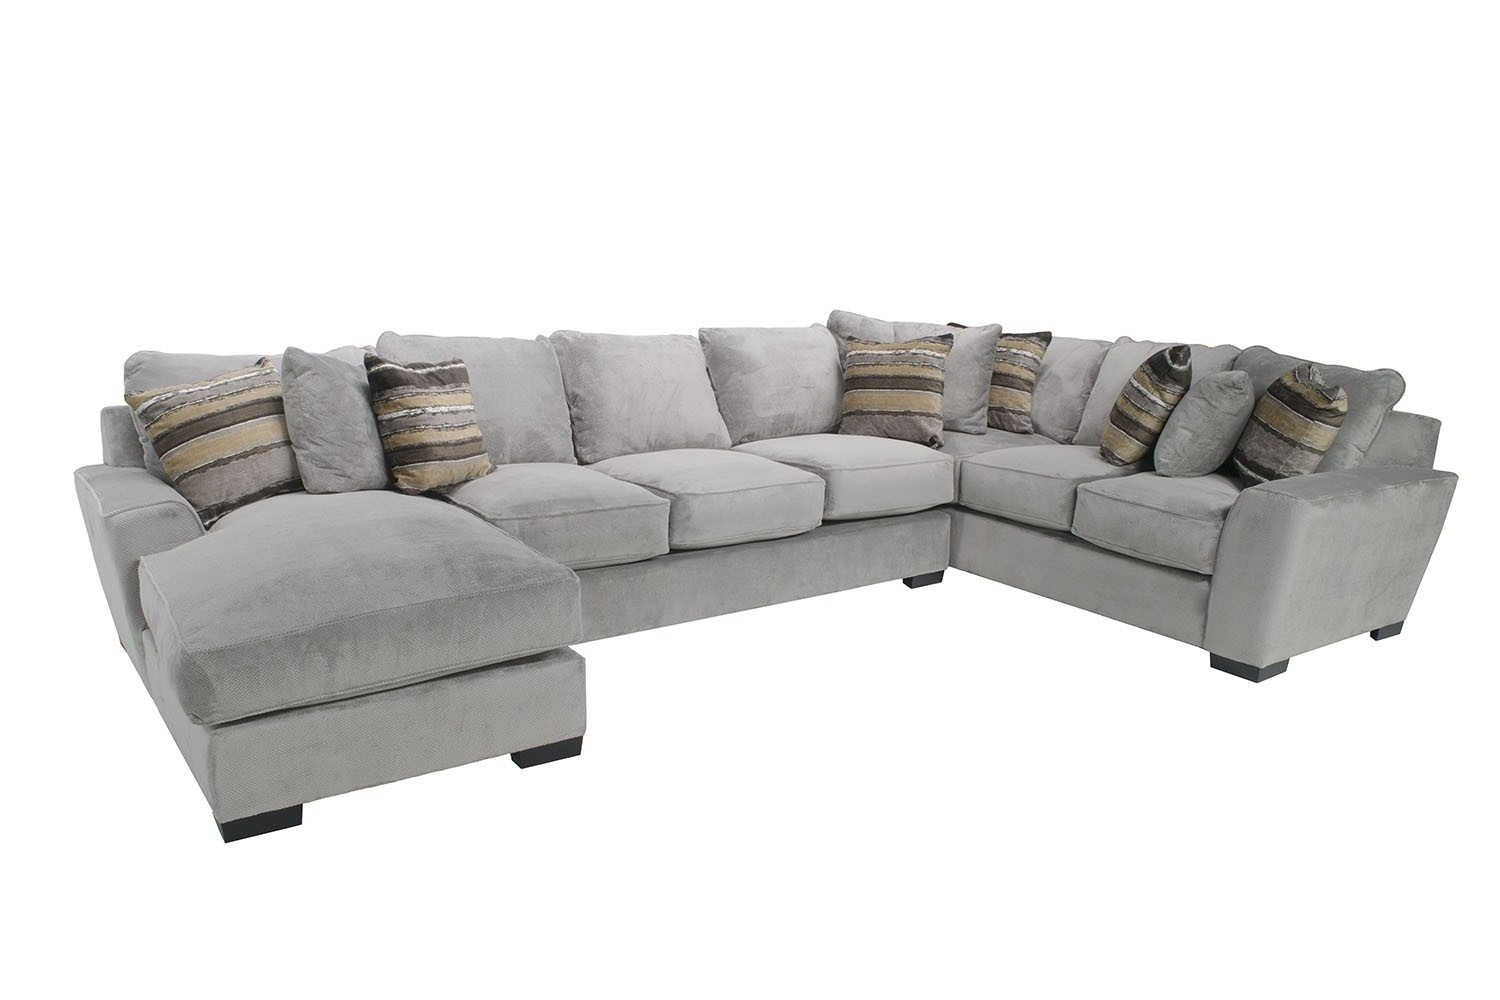 Sectional Sofas | Save Mor Online And In Store In Aspen 2 Piece Sleeper Sectionals With Raf Chaise (View 20 of 25)